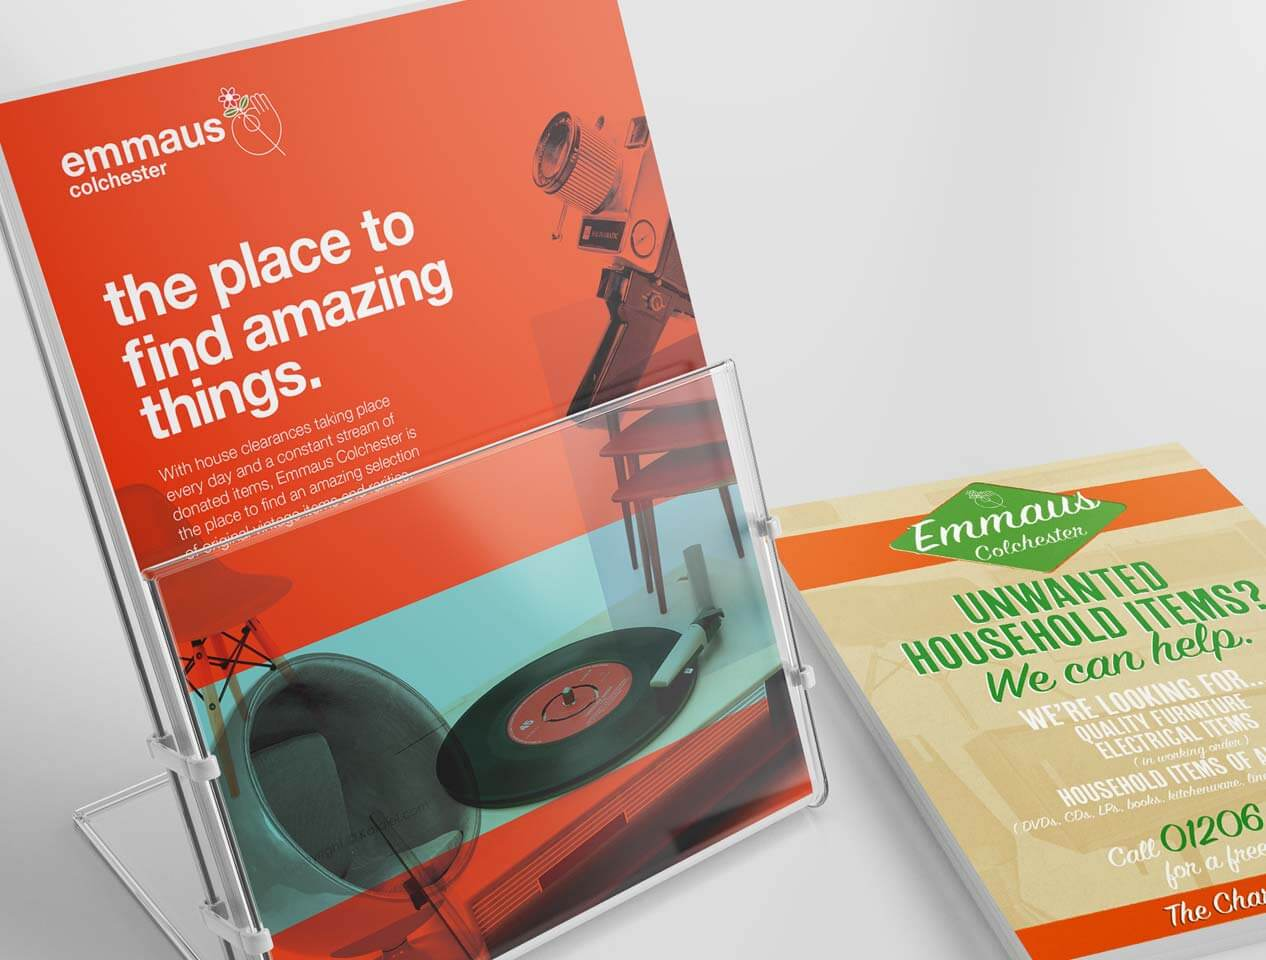 Image showing 2 different designs of leaflets for the Emmaus homeless charity